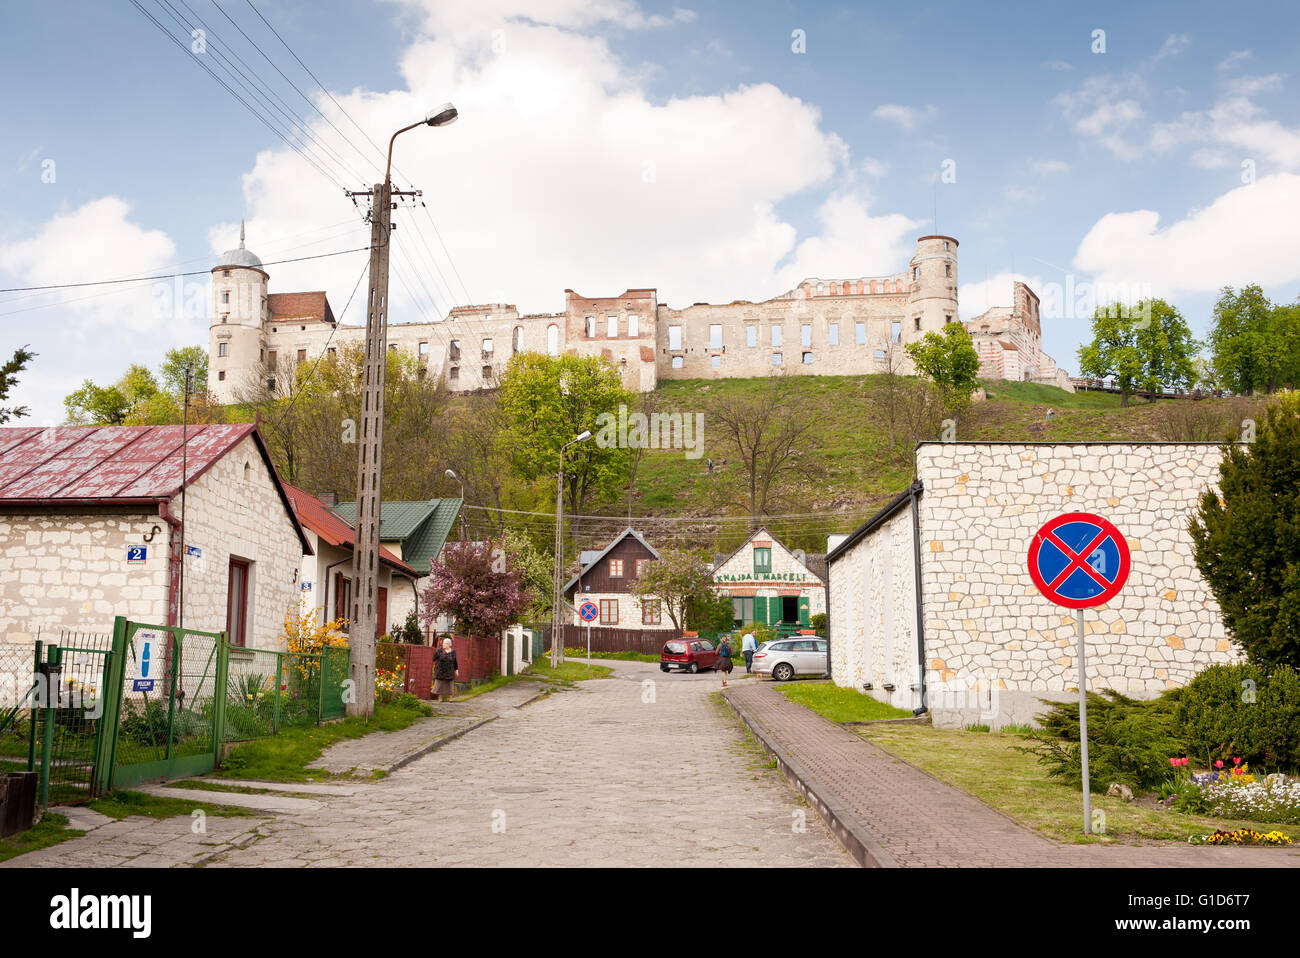 Castle ruins exterior in Janowiec, historical building on the hillside view across the Plac Wolnosci Street below, - Stock Image